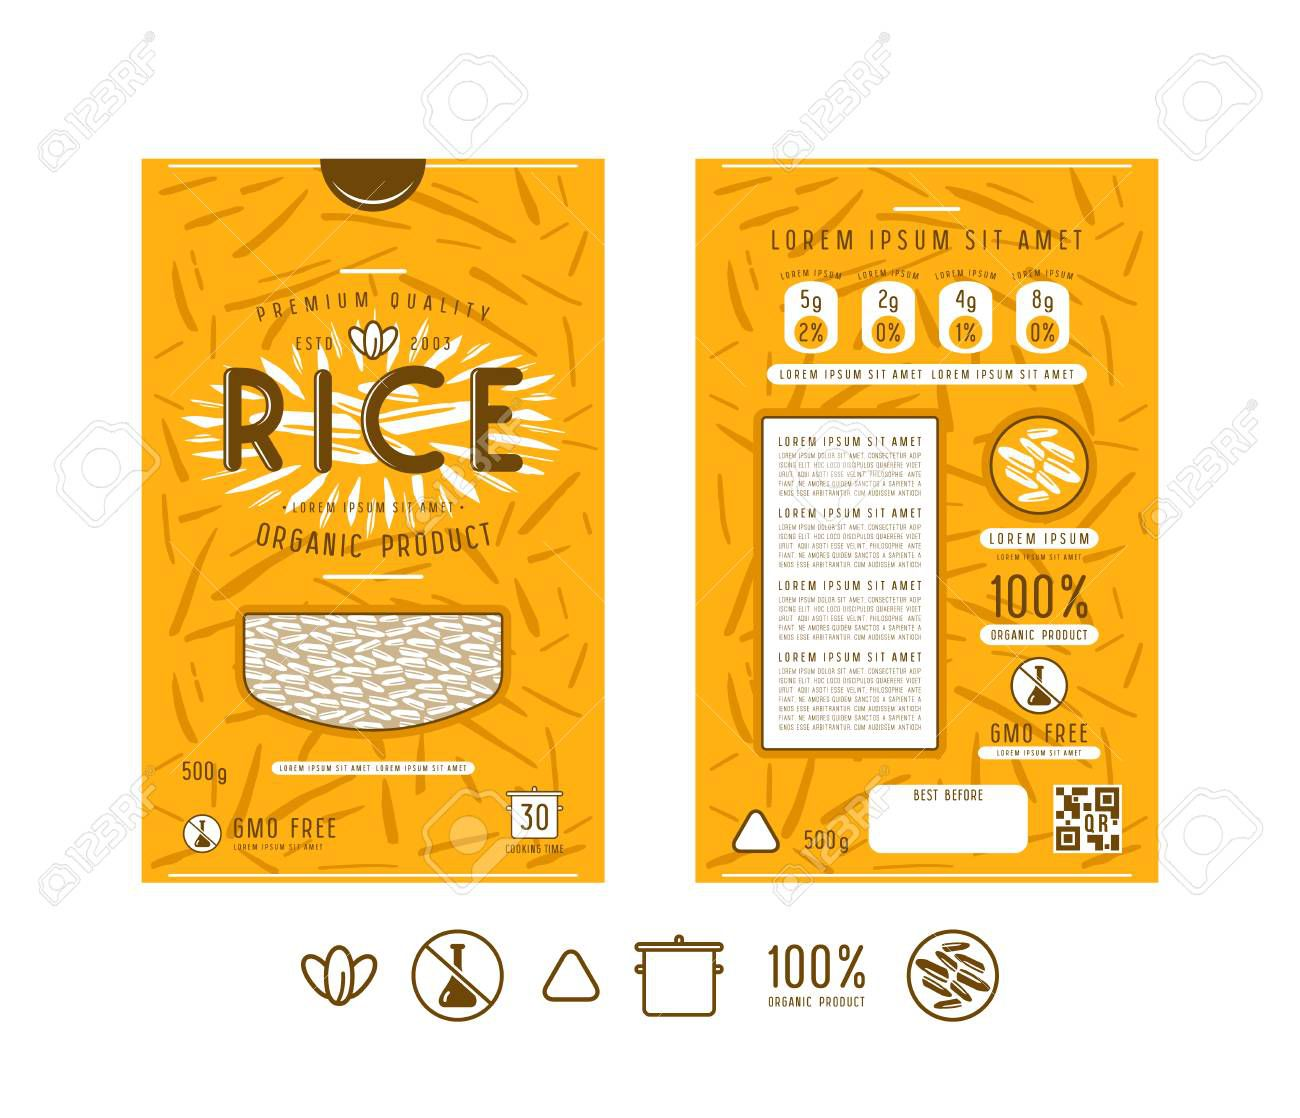 003 Simple Free Food Label Design Template Highest Quality  Templates DownloadFull